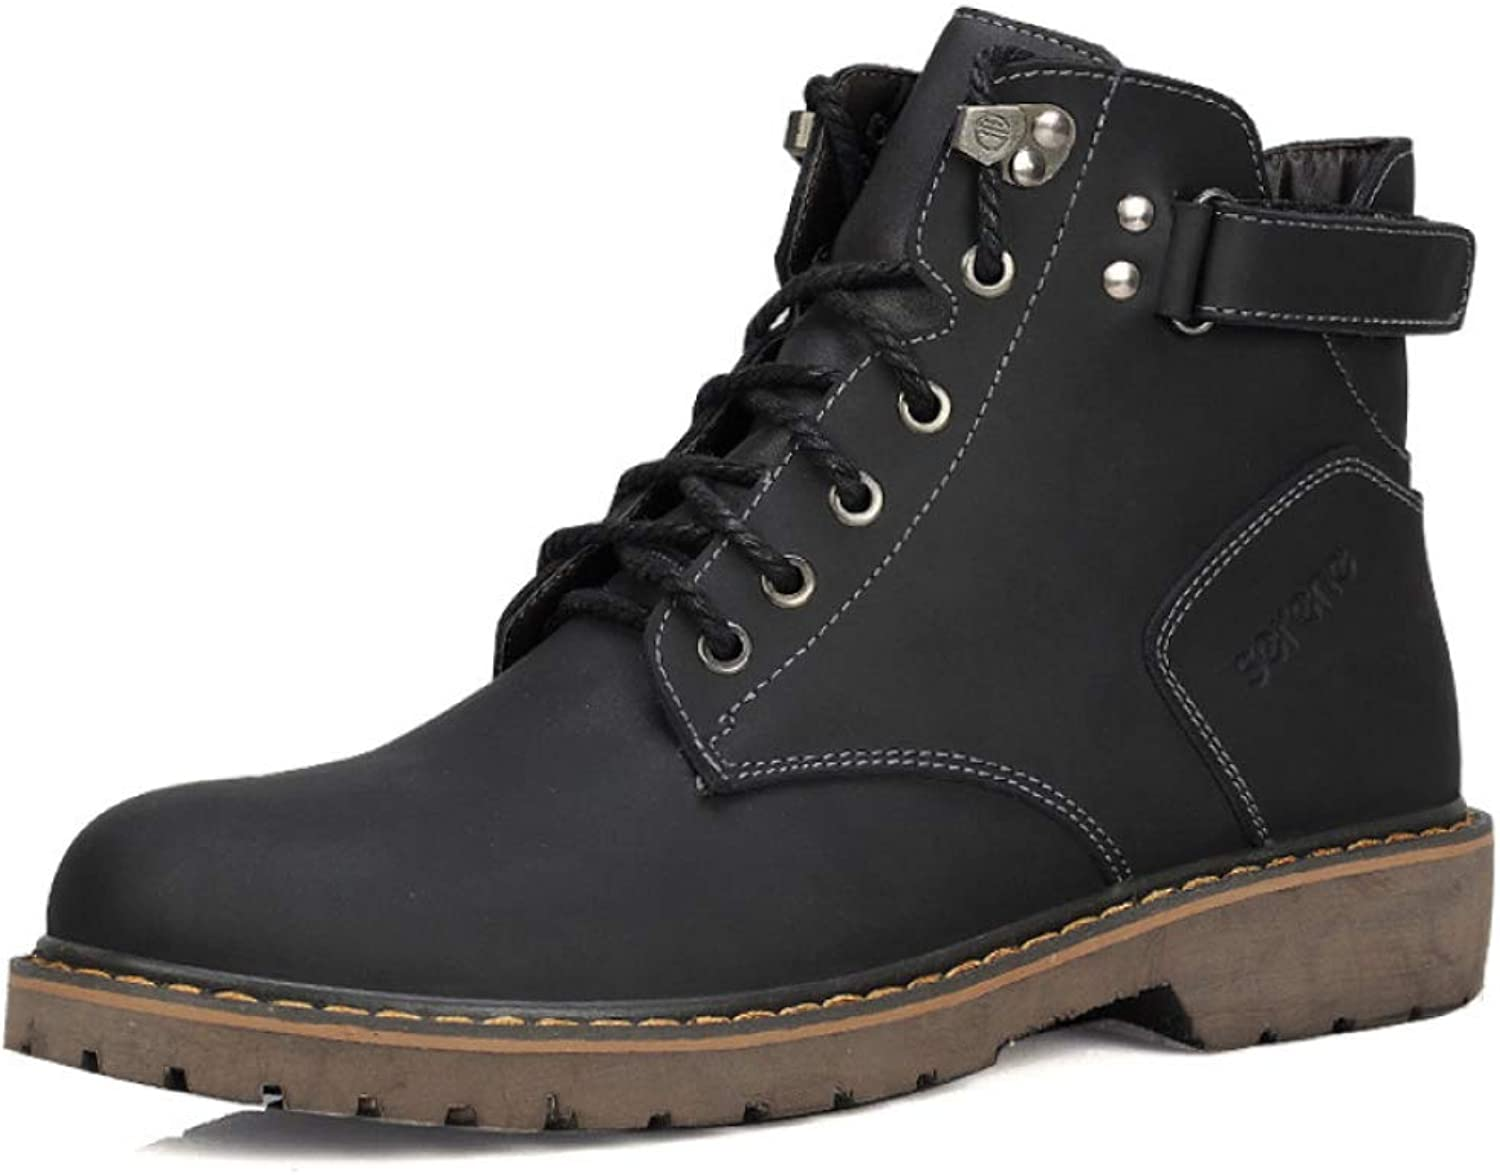 DSFGHE Men's Martin Boots Ankle Chukka Boots Army Tactics Leather Boots Snow Boots Casual High Help Work Boots Lace-up shoes